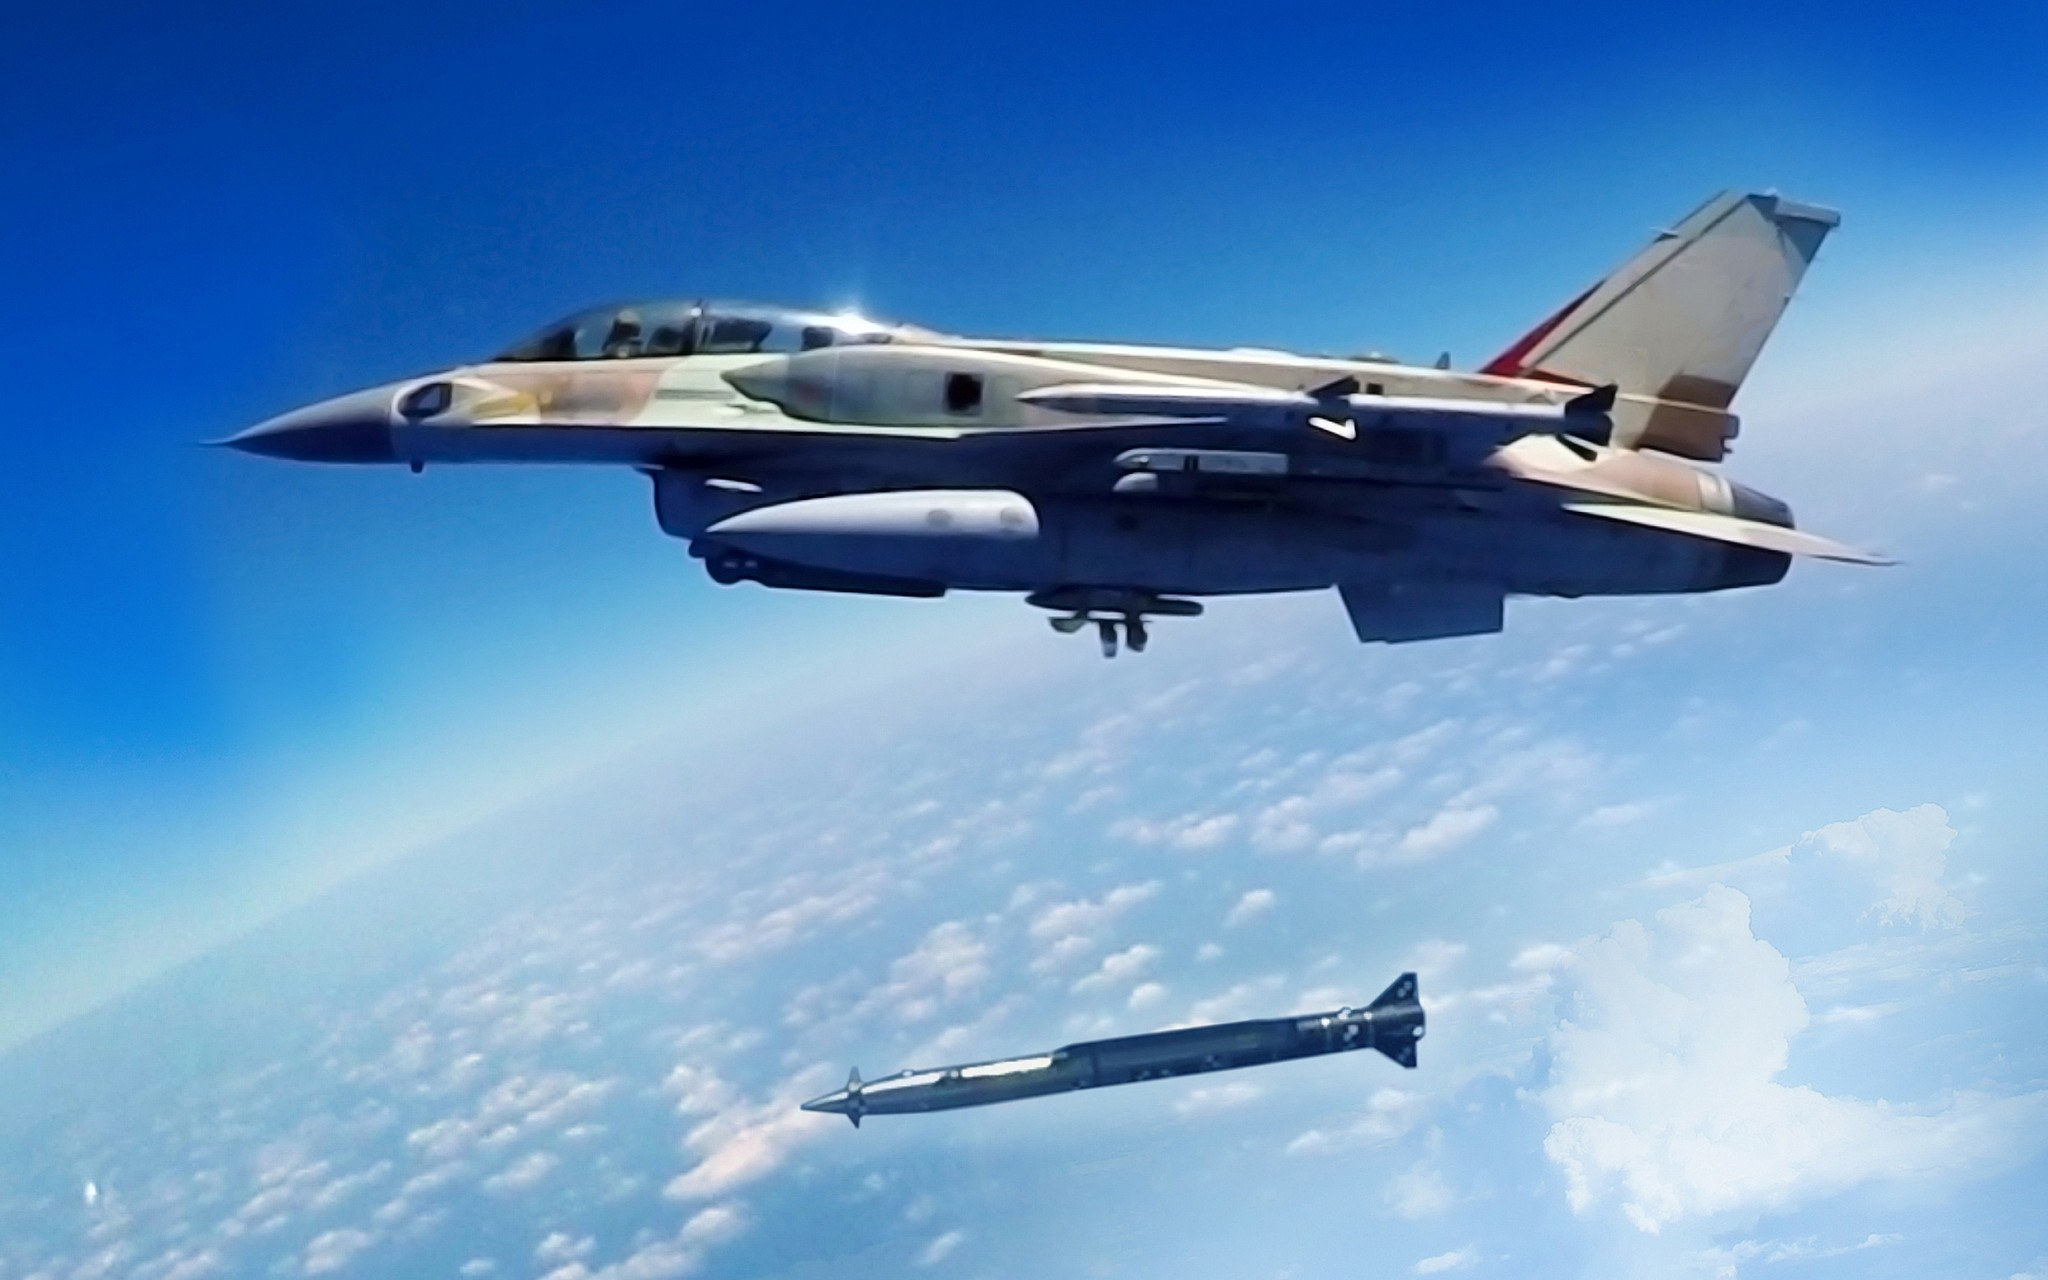 Israeli Air Force Struck Syria's Masyaf With New Supersonic, Precision-Guided Missiles: Expert